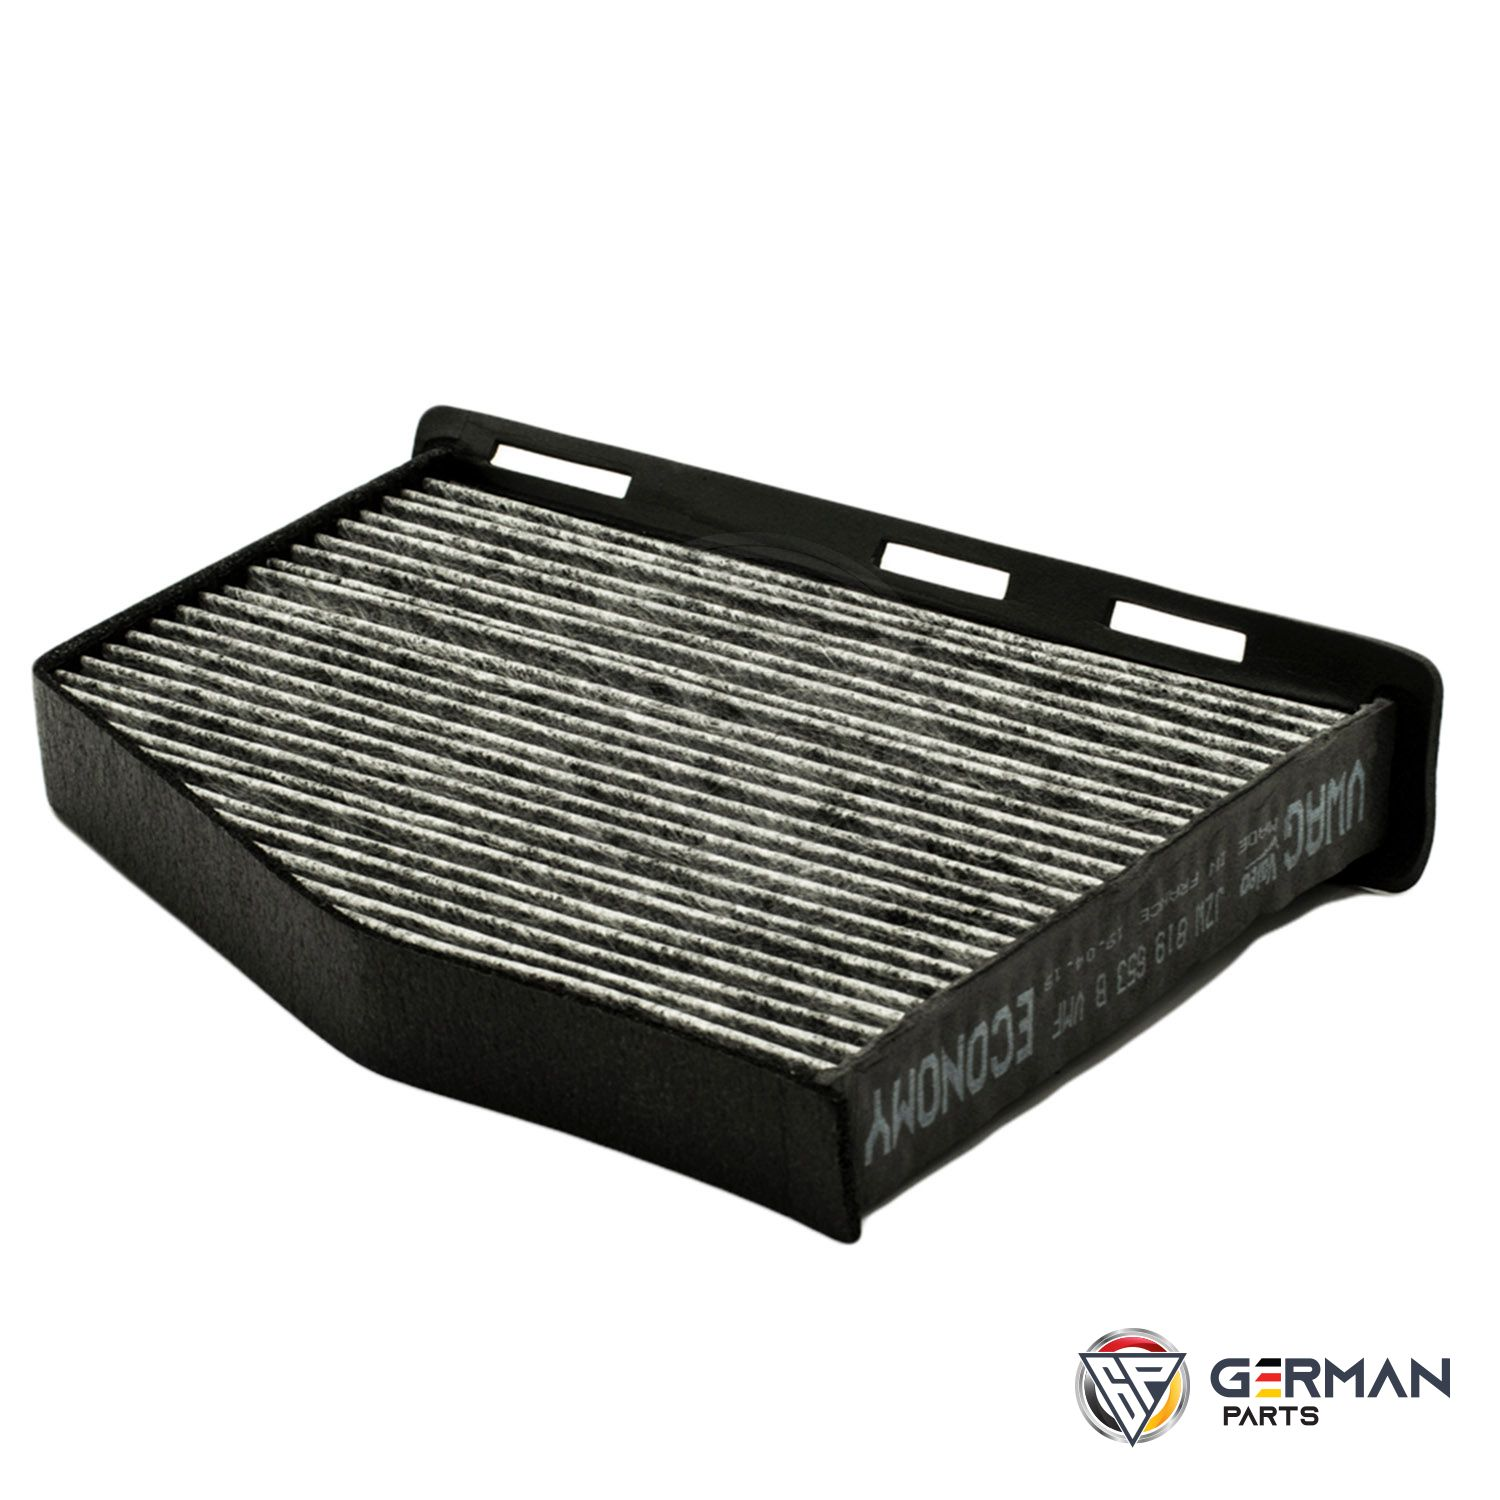 Buy Genuine Audi/Volkswagen Ac Dust Filter JZW819653B - German Parts